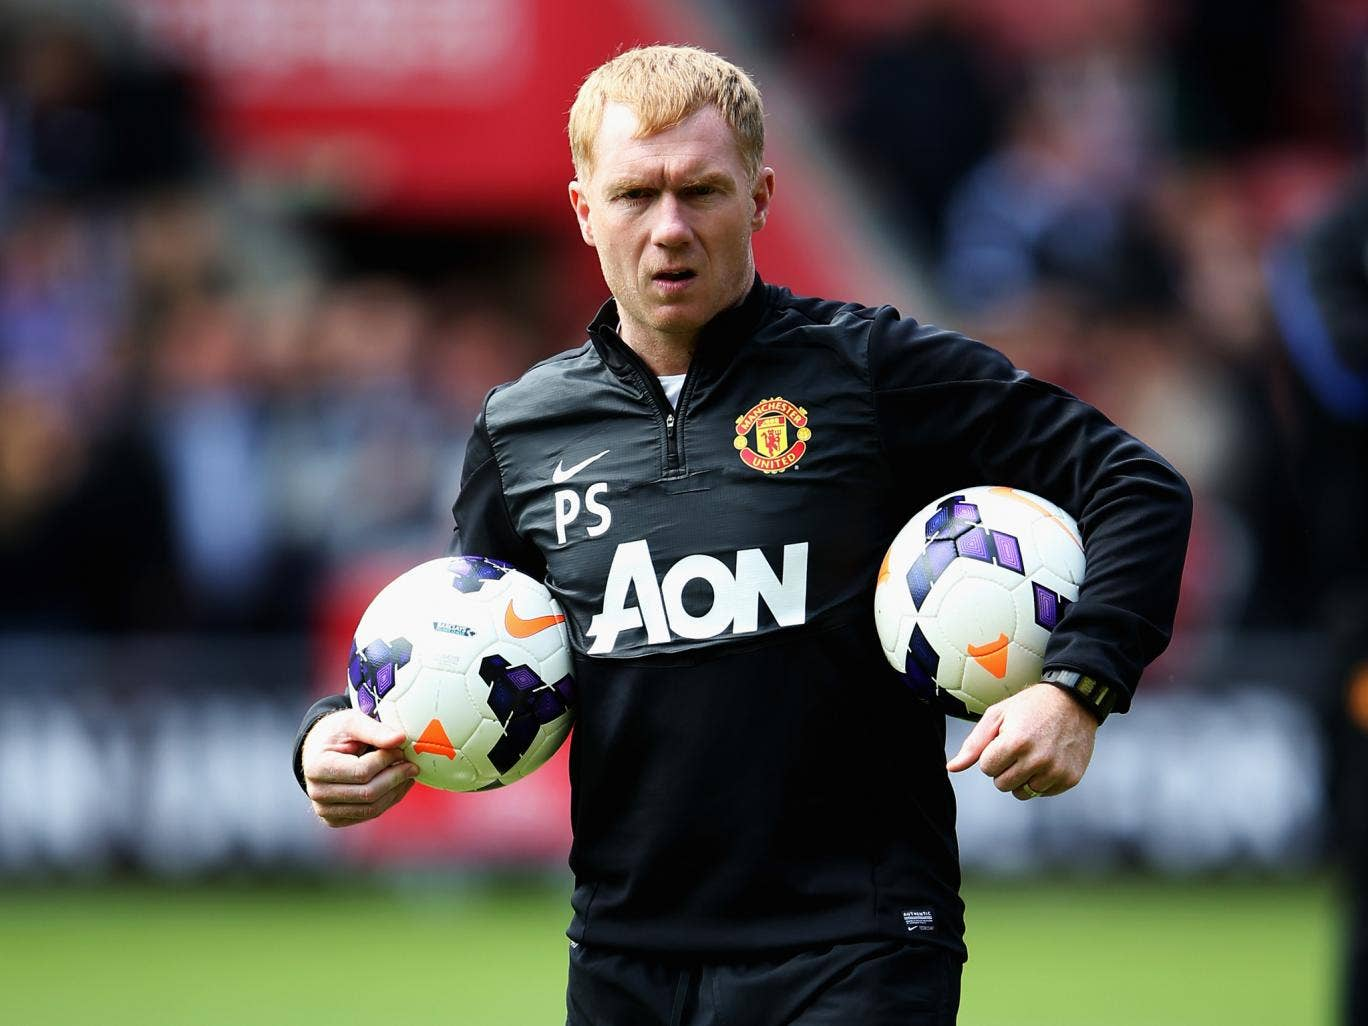 Paul Scholes looks set to leave Manchester United after he admitted he doesn't expect to be part of Louis van Gaal's coaching set-up